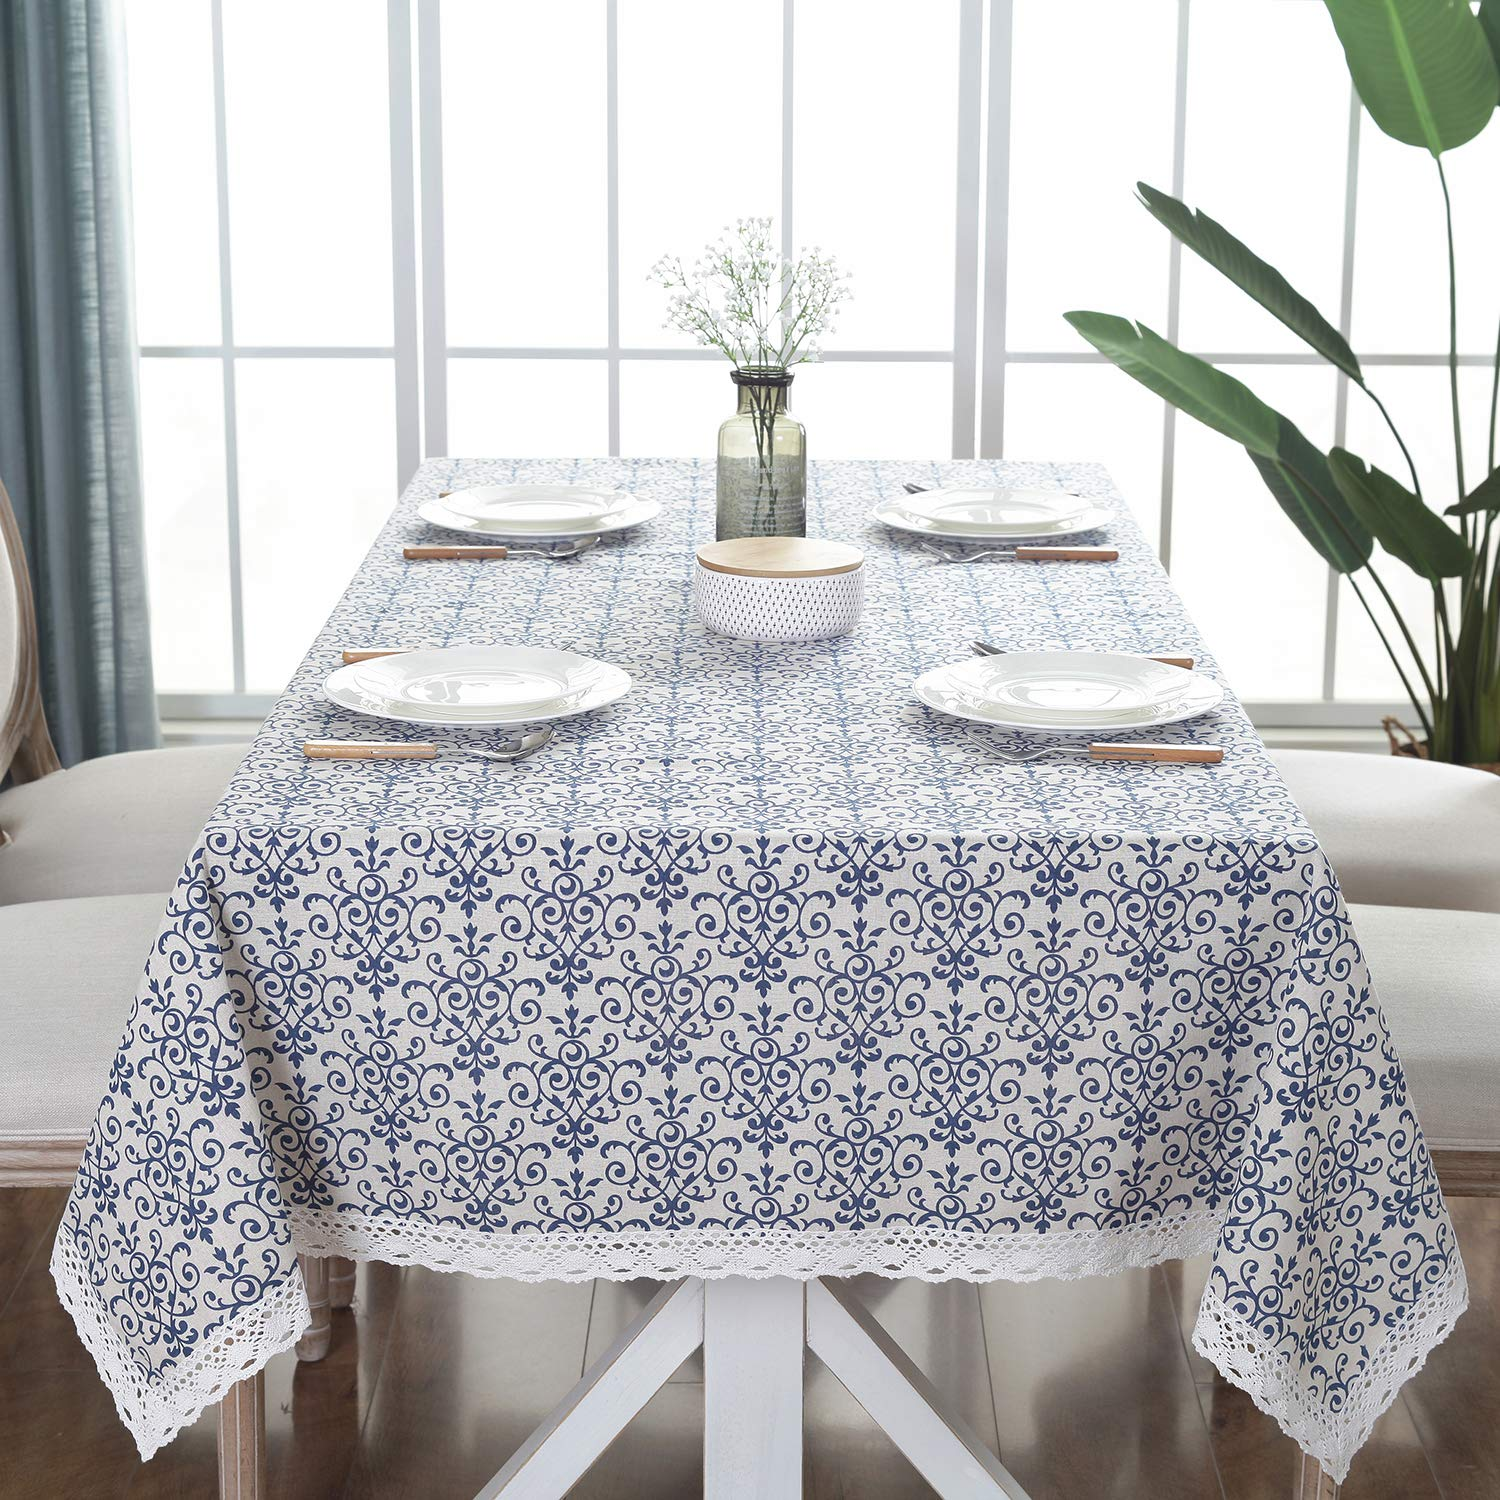 ColorBird Vintage Navy Damask Pattern Decorative Macrame Lace Tablecloth Heavy Weight Cotton Linen Fabric Decorative Table Top Cover, Rectangle/Oblong, 55 x 120 Inch